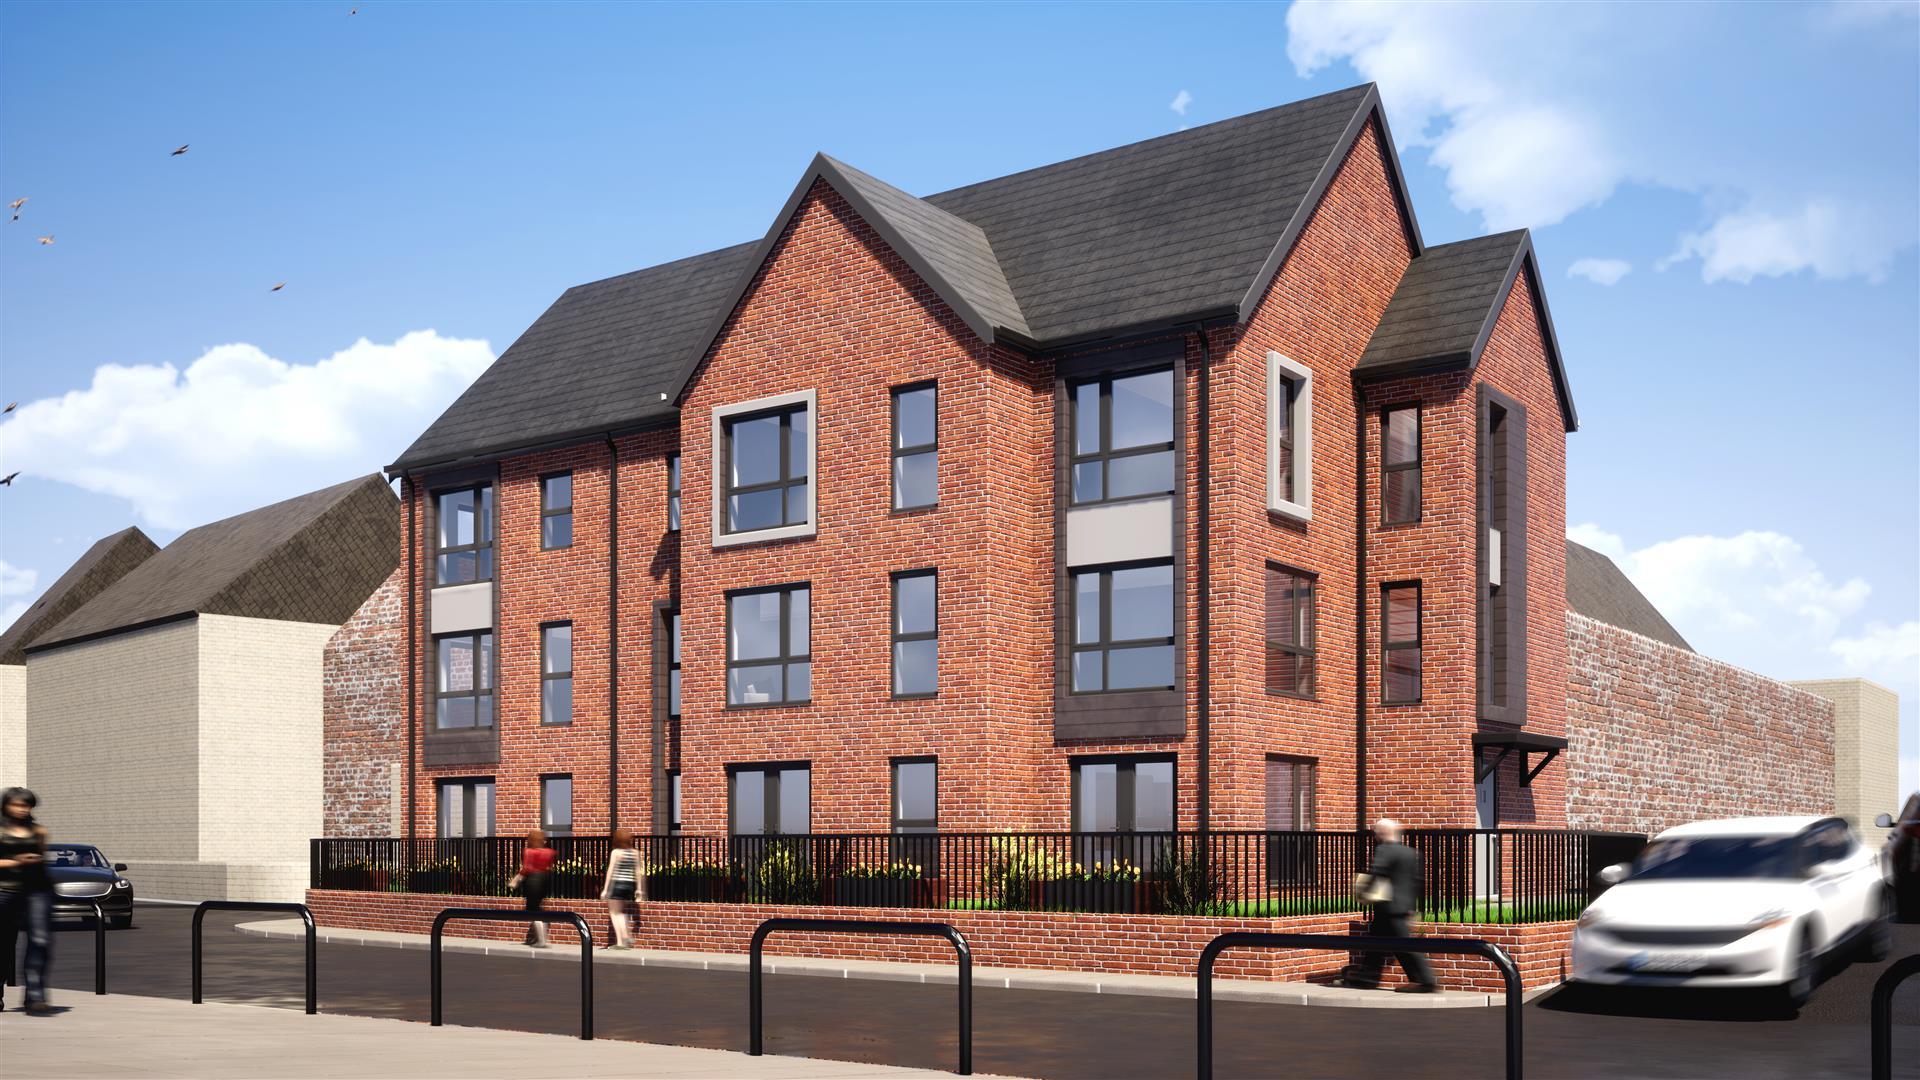 4 bed town house for sale in Queens Court, Whitley Bay, NE26